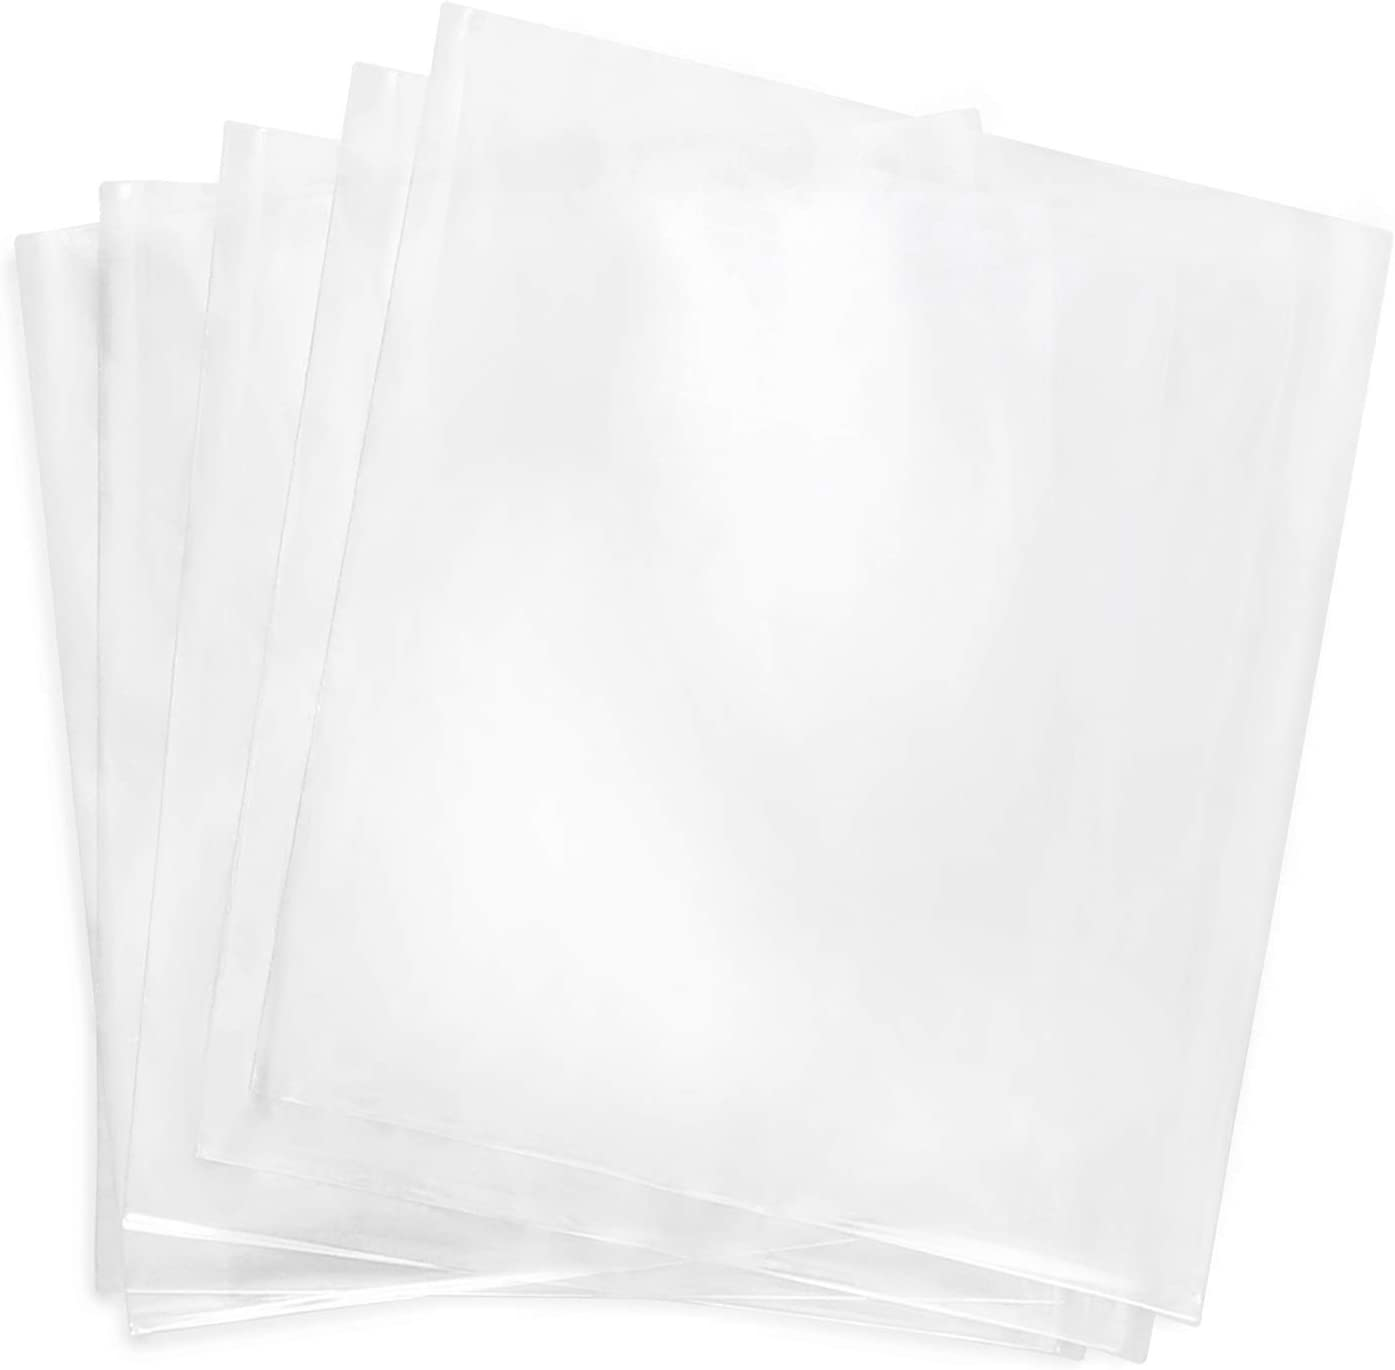 Shrink Wrap Bags,4x4 Inches 200 Pcs Clear PVC Heat Shrink Wrap for Packagaing Soap,Bath Bombs,Candles,Small Gifts and Homemade DIY Projects